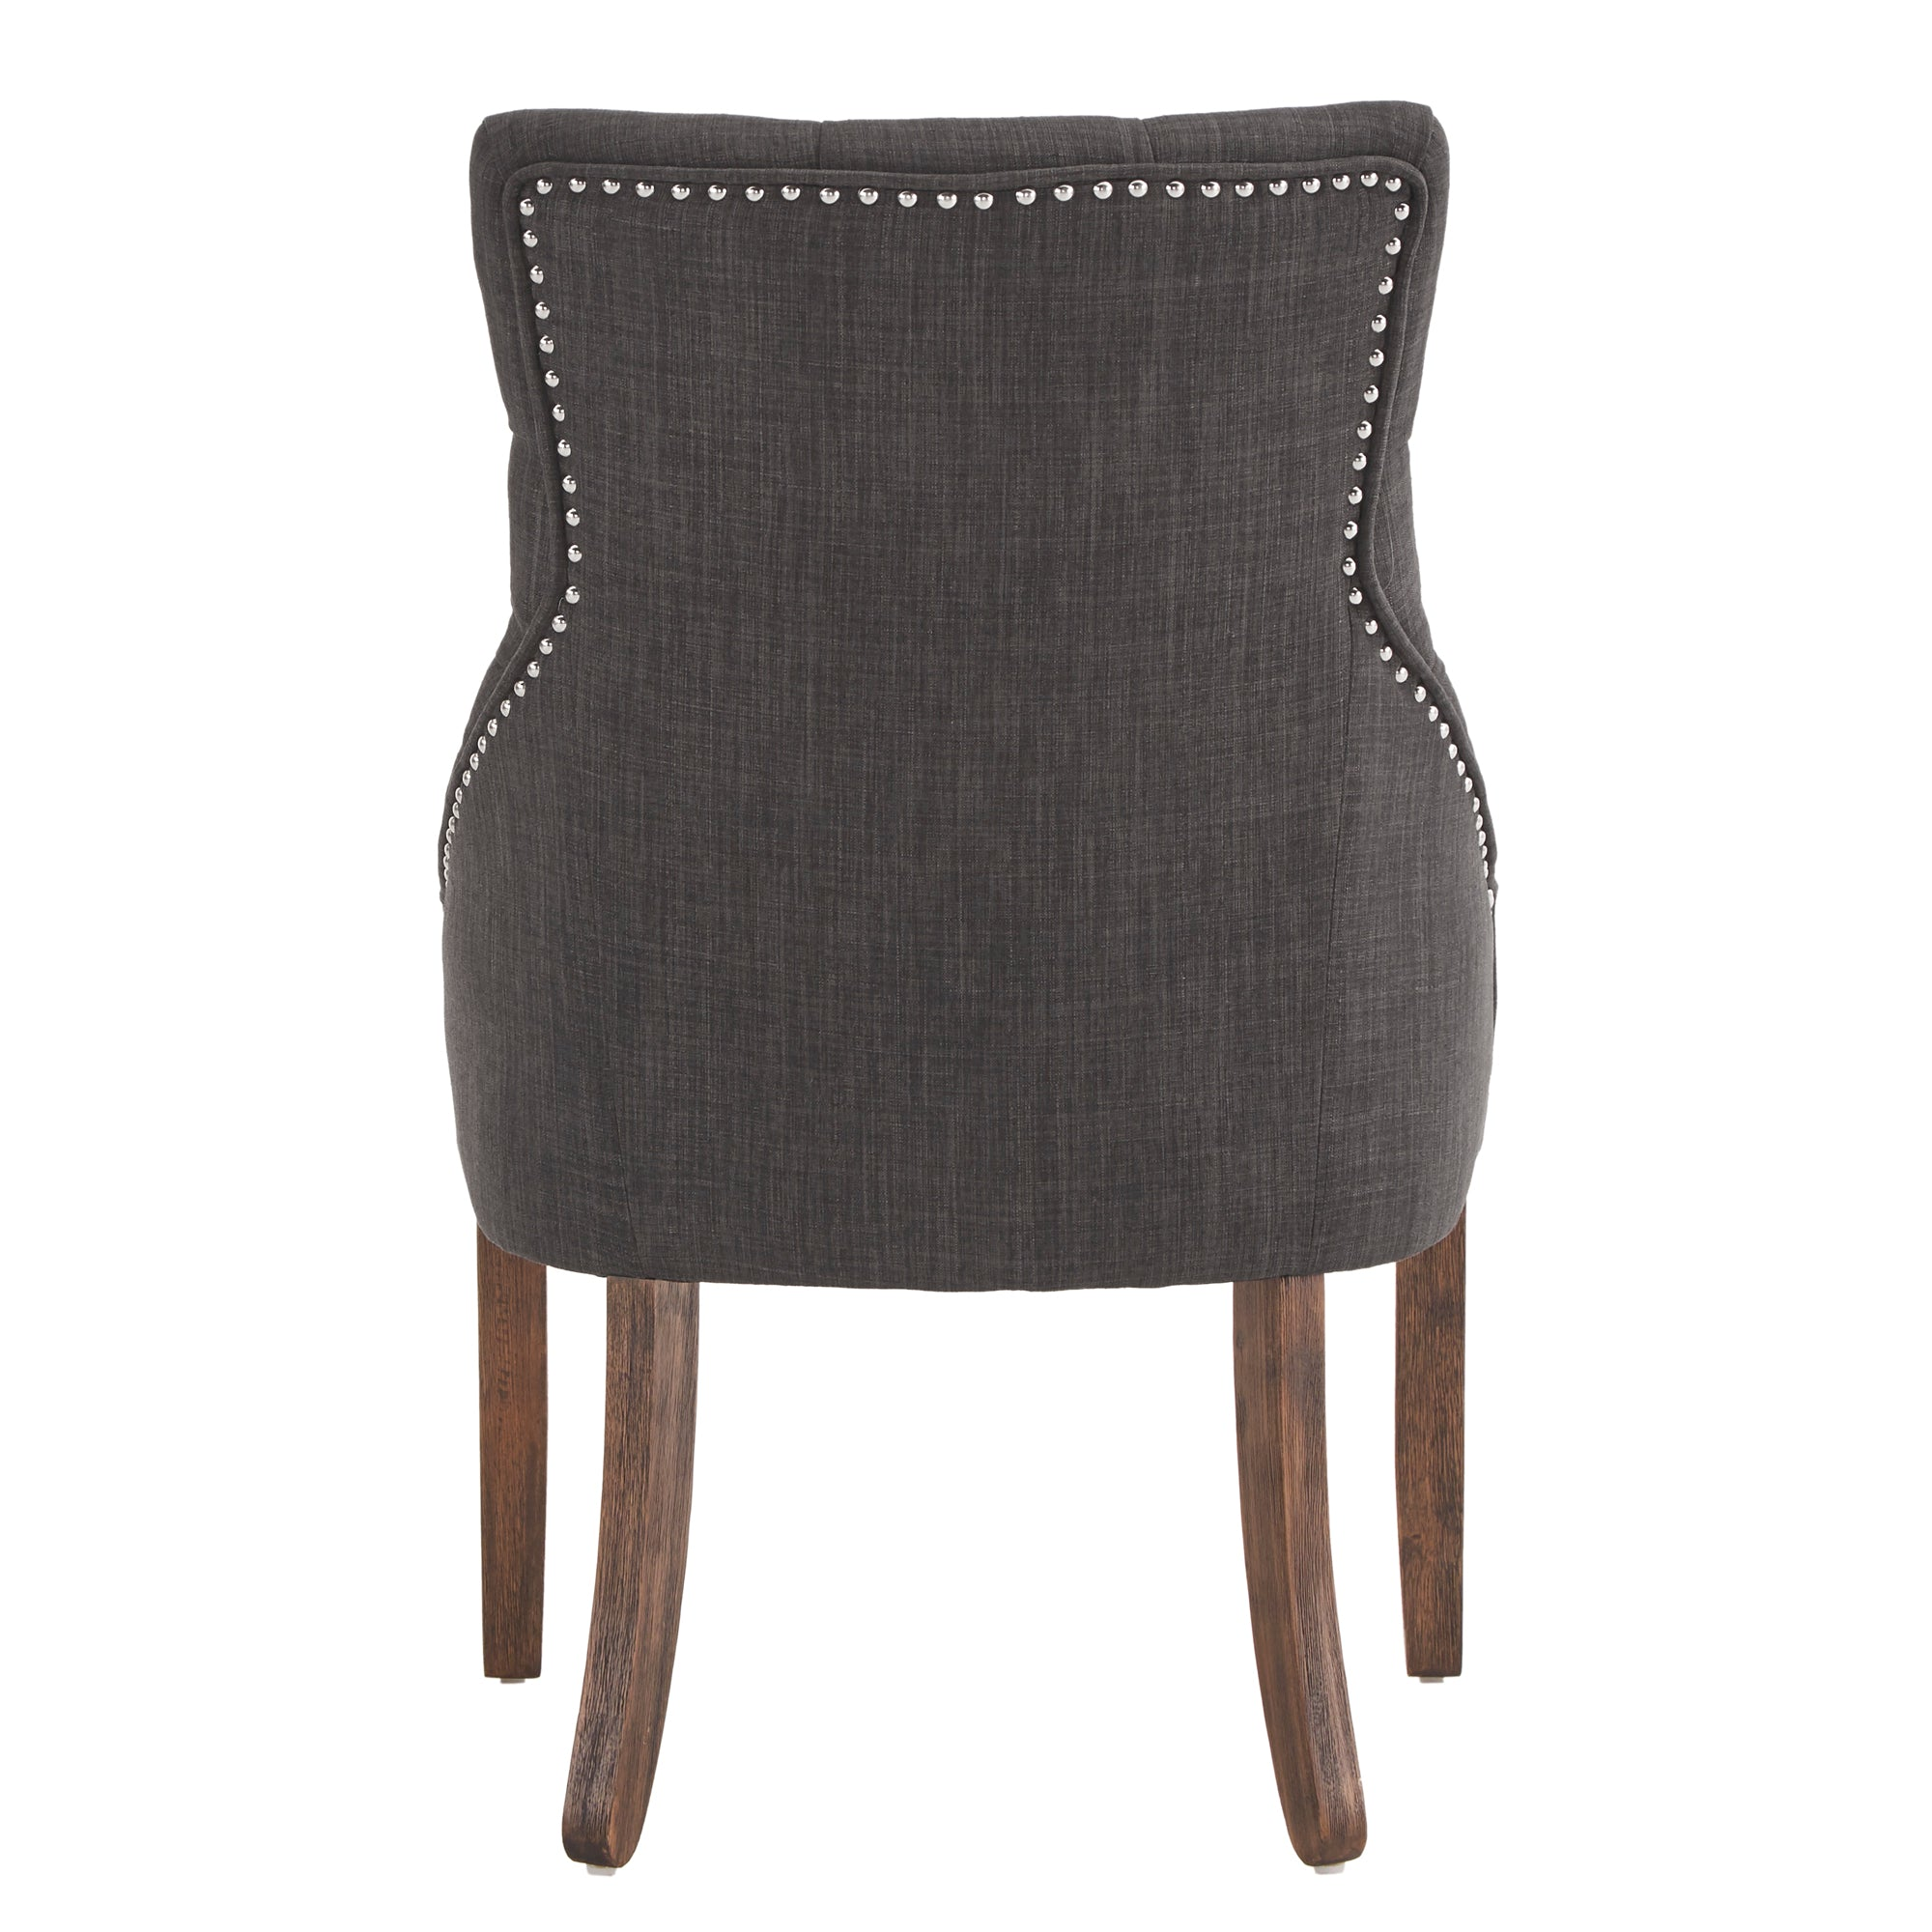 Linen Curved Back Tufted Dining Chair (Set of Two) - Dark Grey Linen